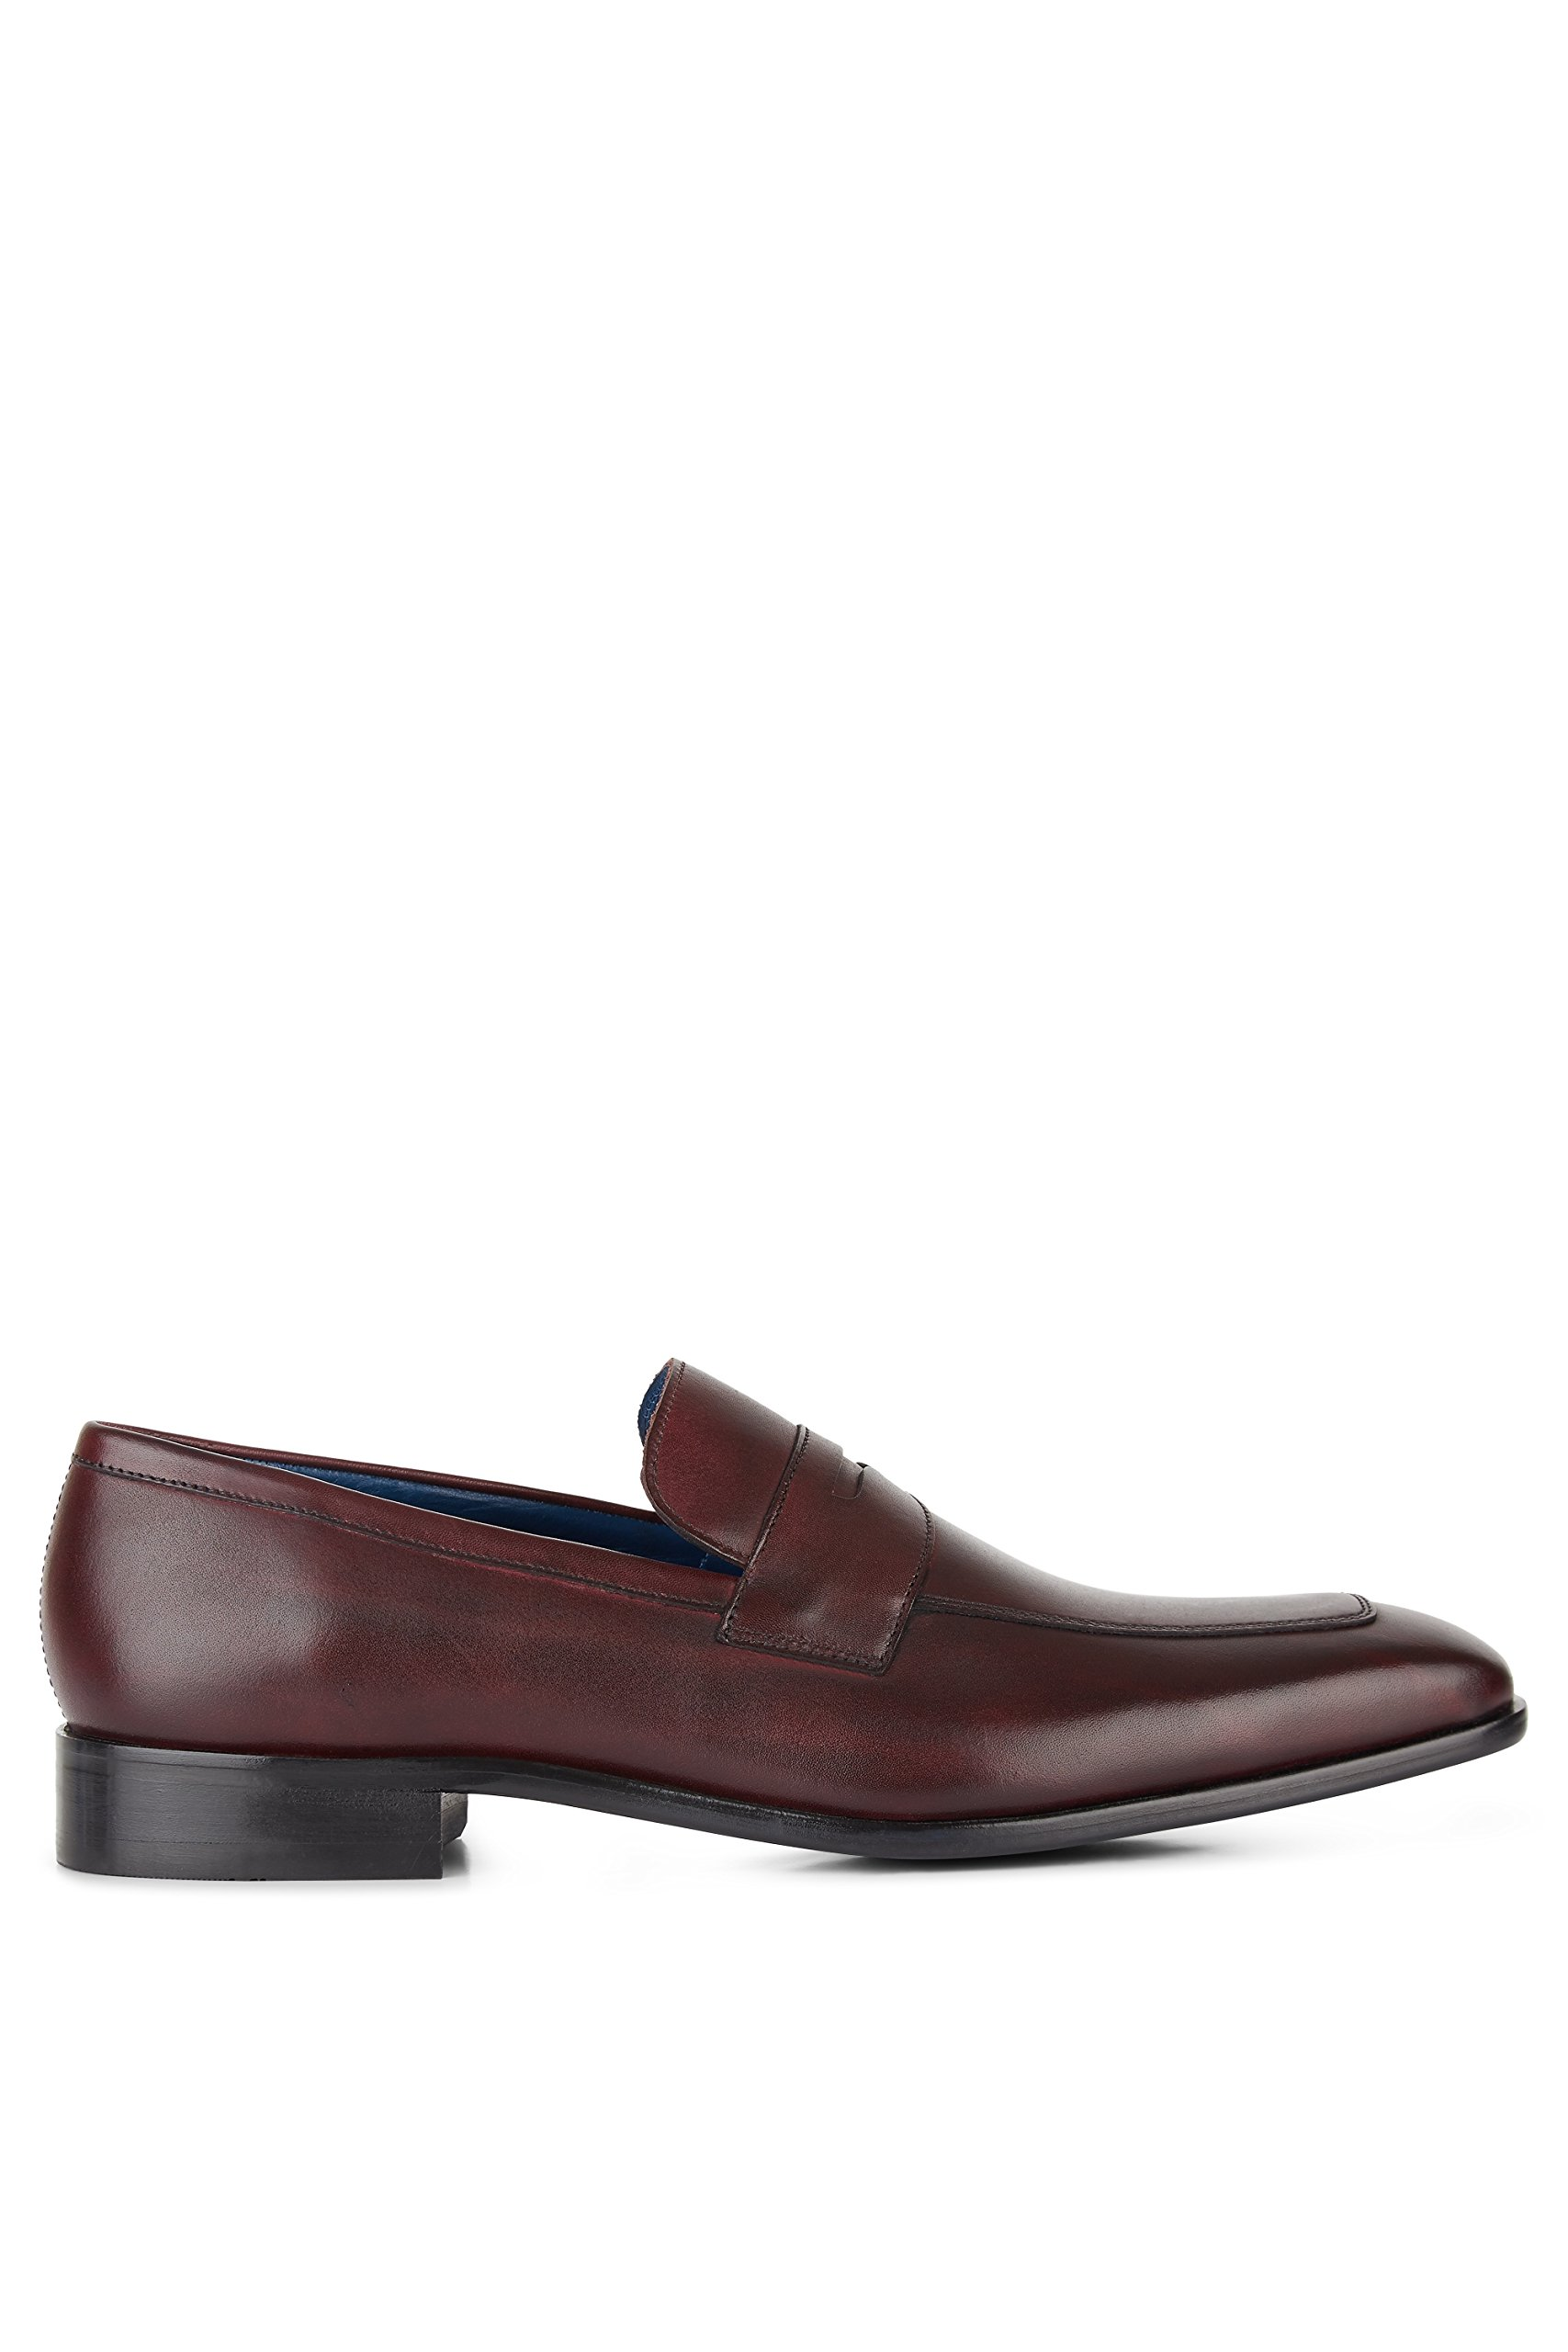 Moss 1851 Men's Lewis Brown Saddle Slip On 8.5 by Moss 1851